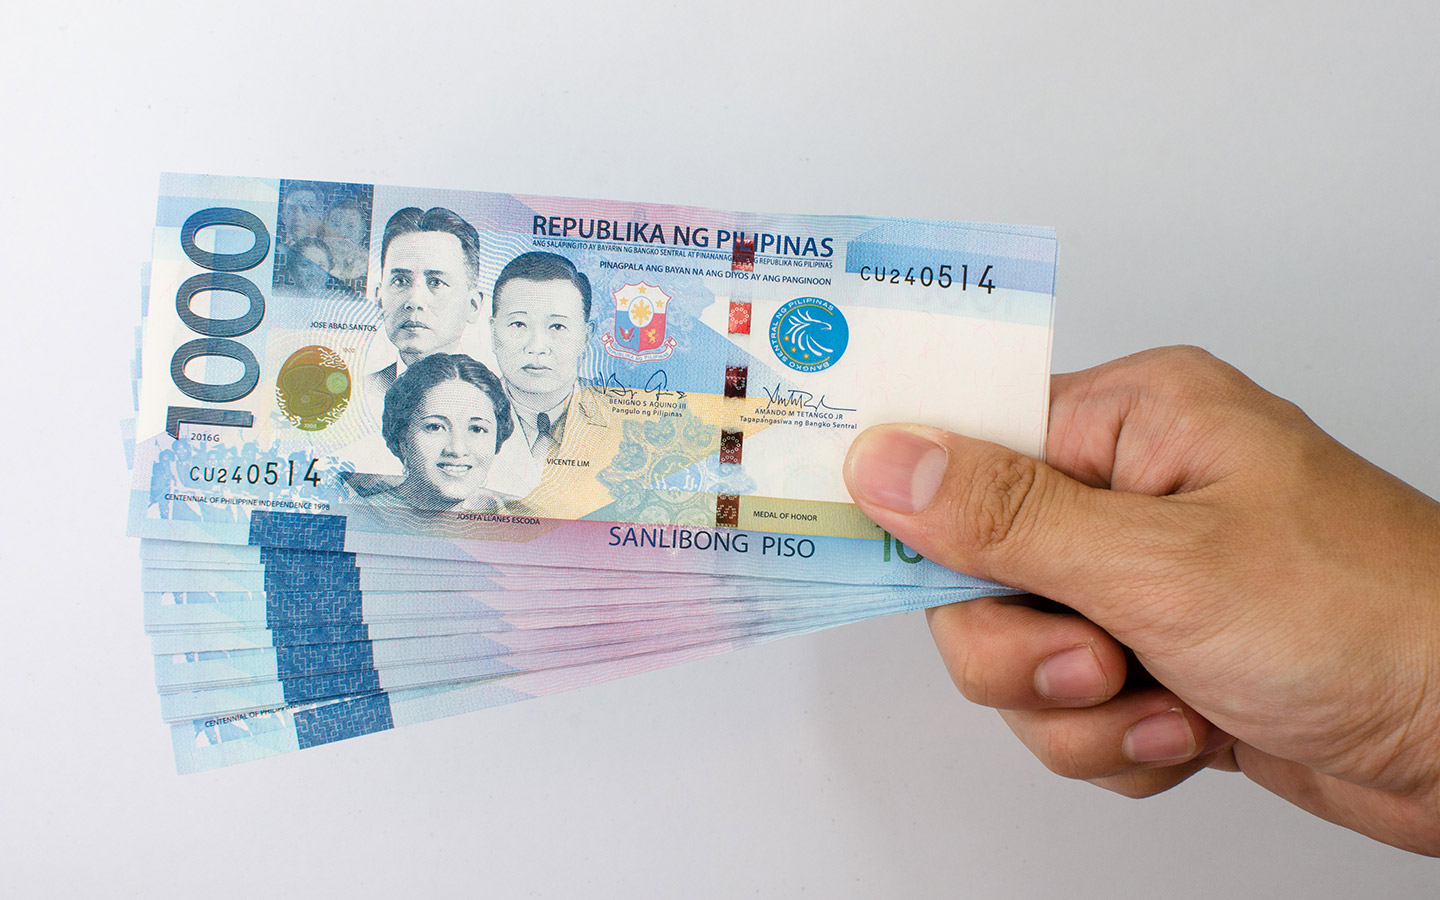 Hand holding a stack of PHP 1000 notes